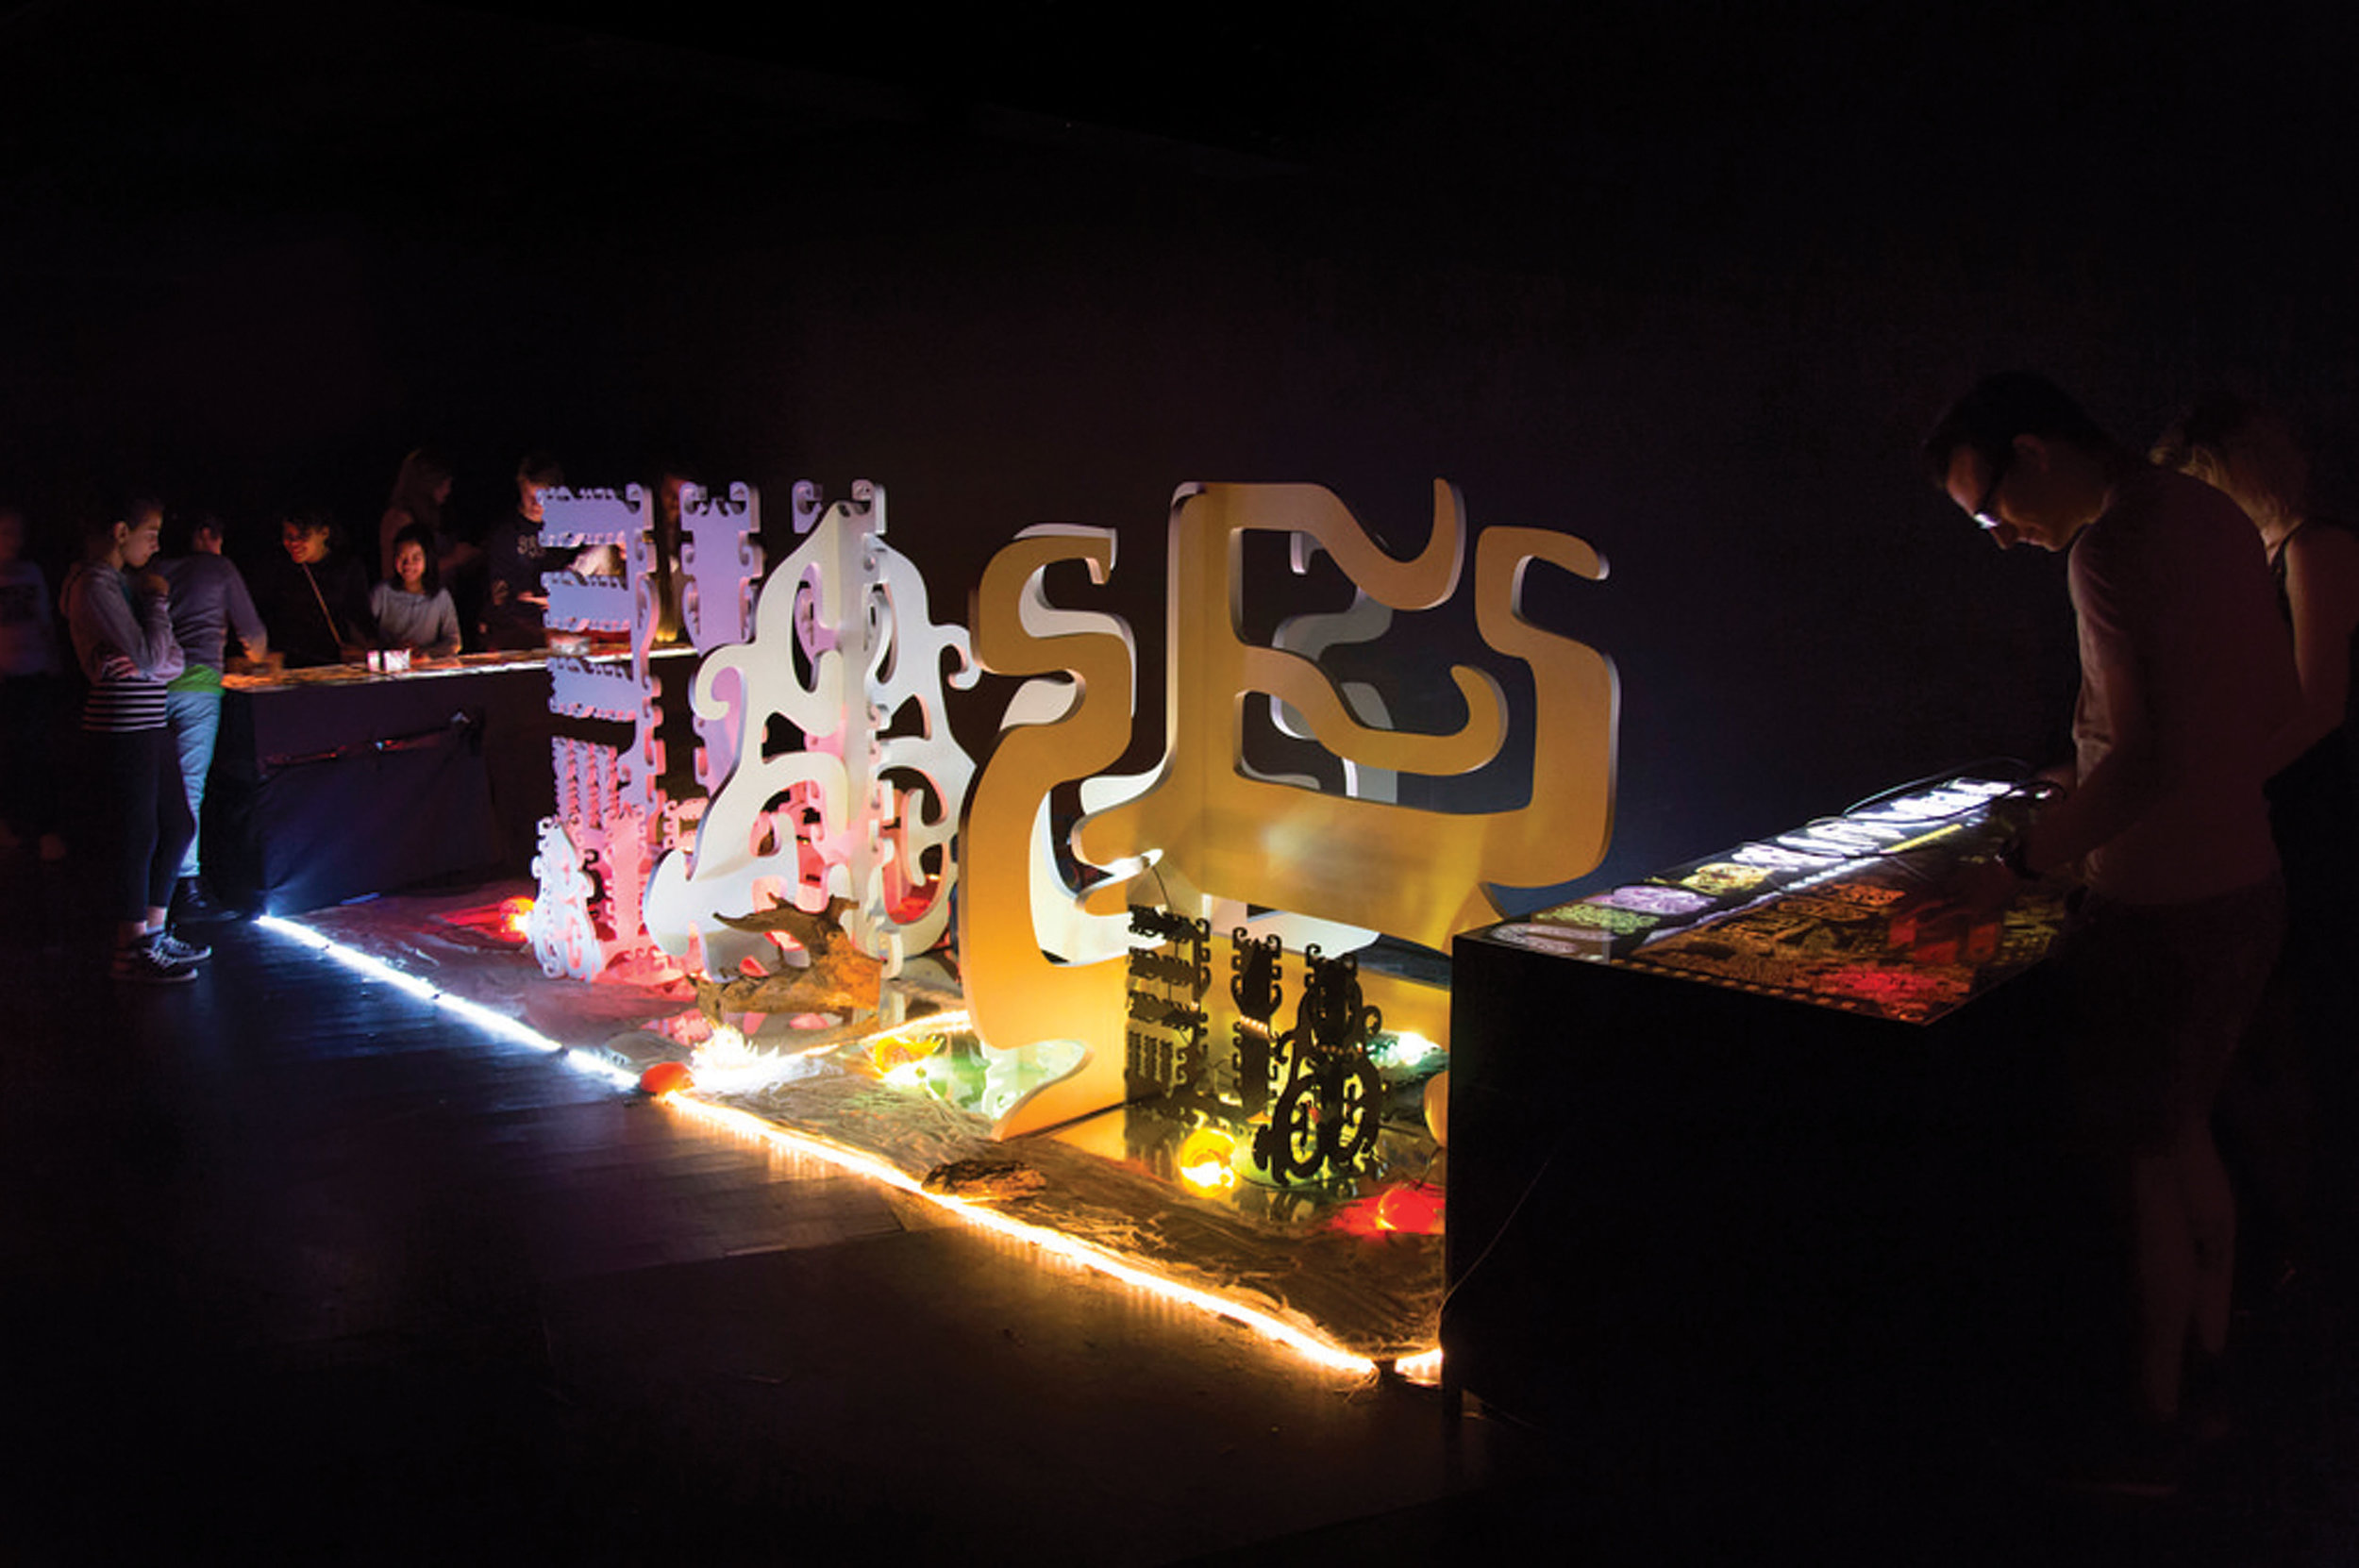 an interactive MSHR installation at the Maison des Arts de Créteil in Créteil, France